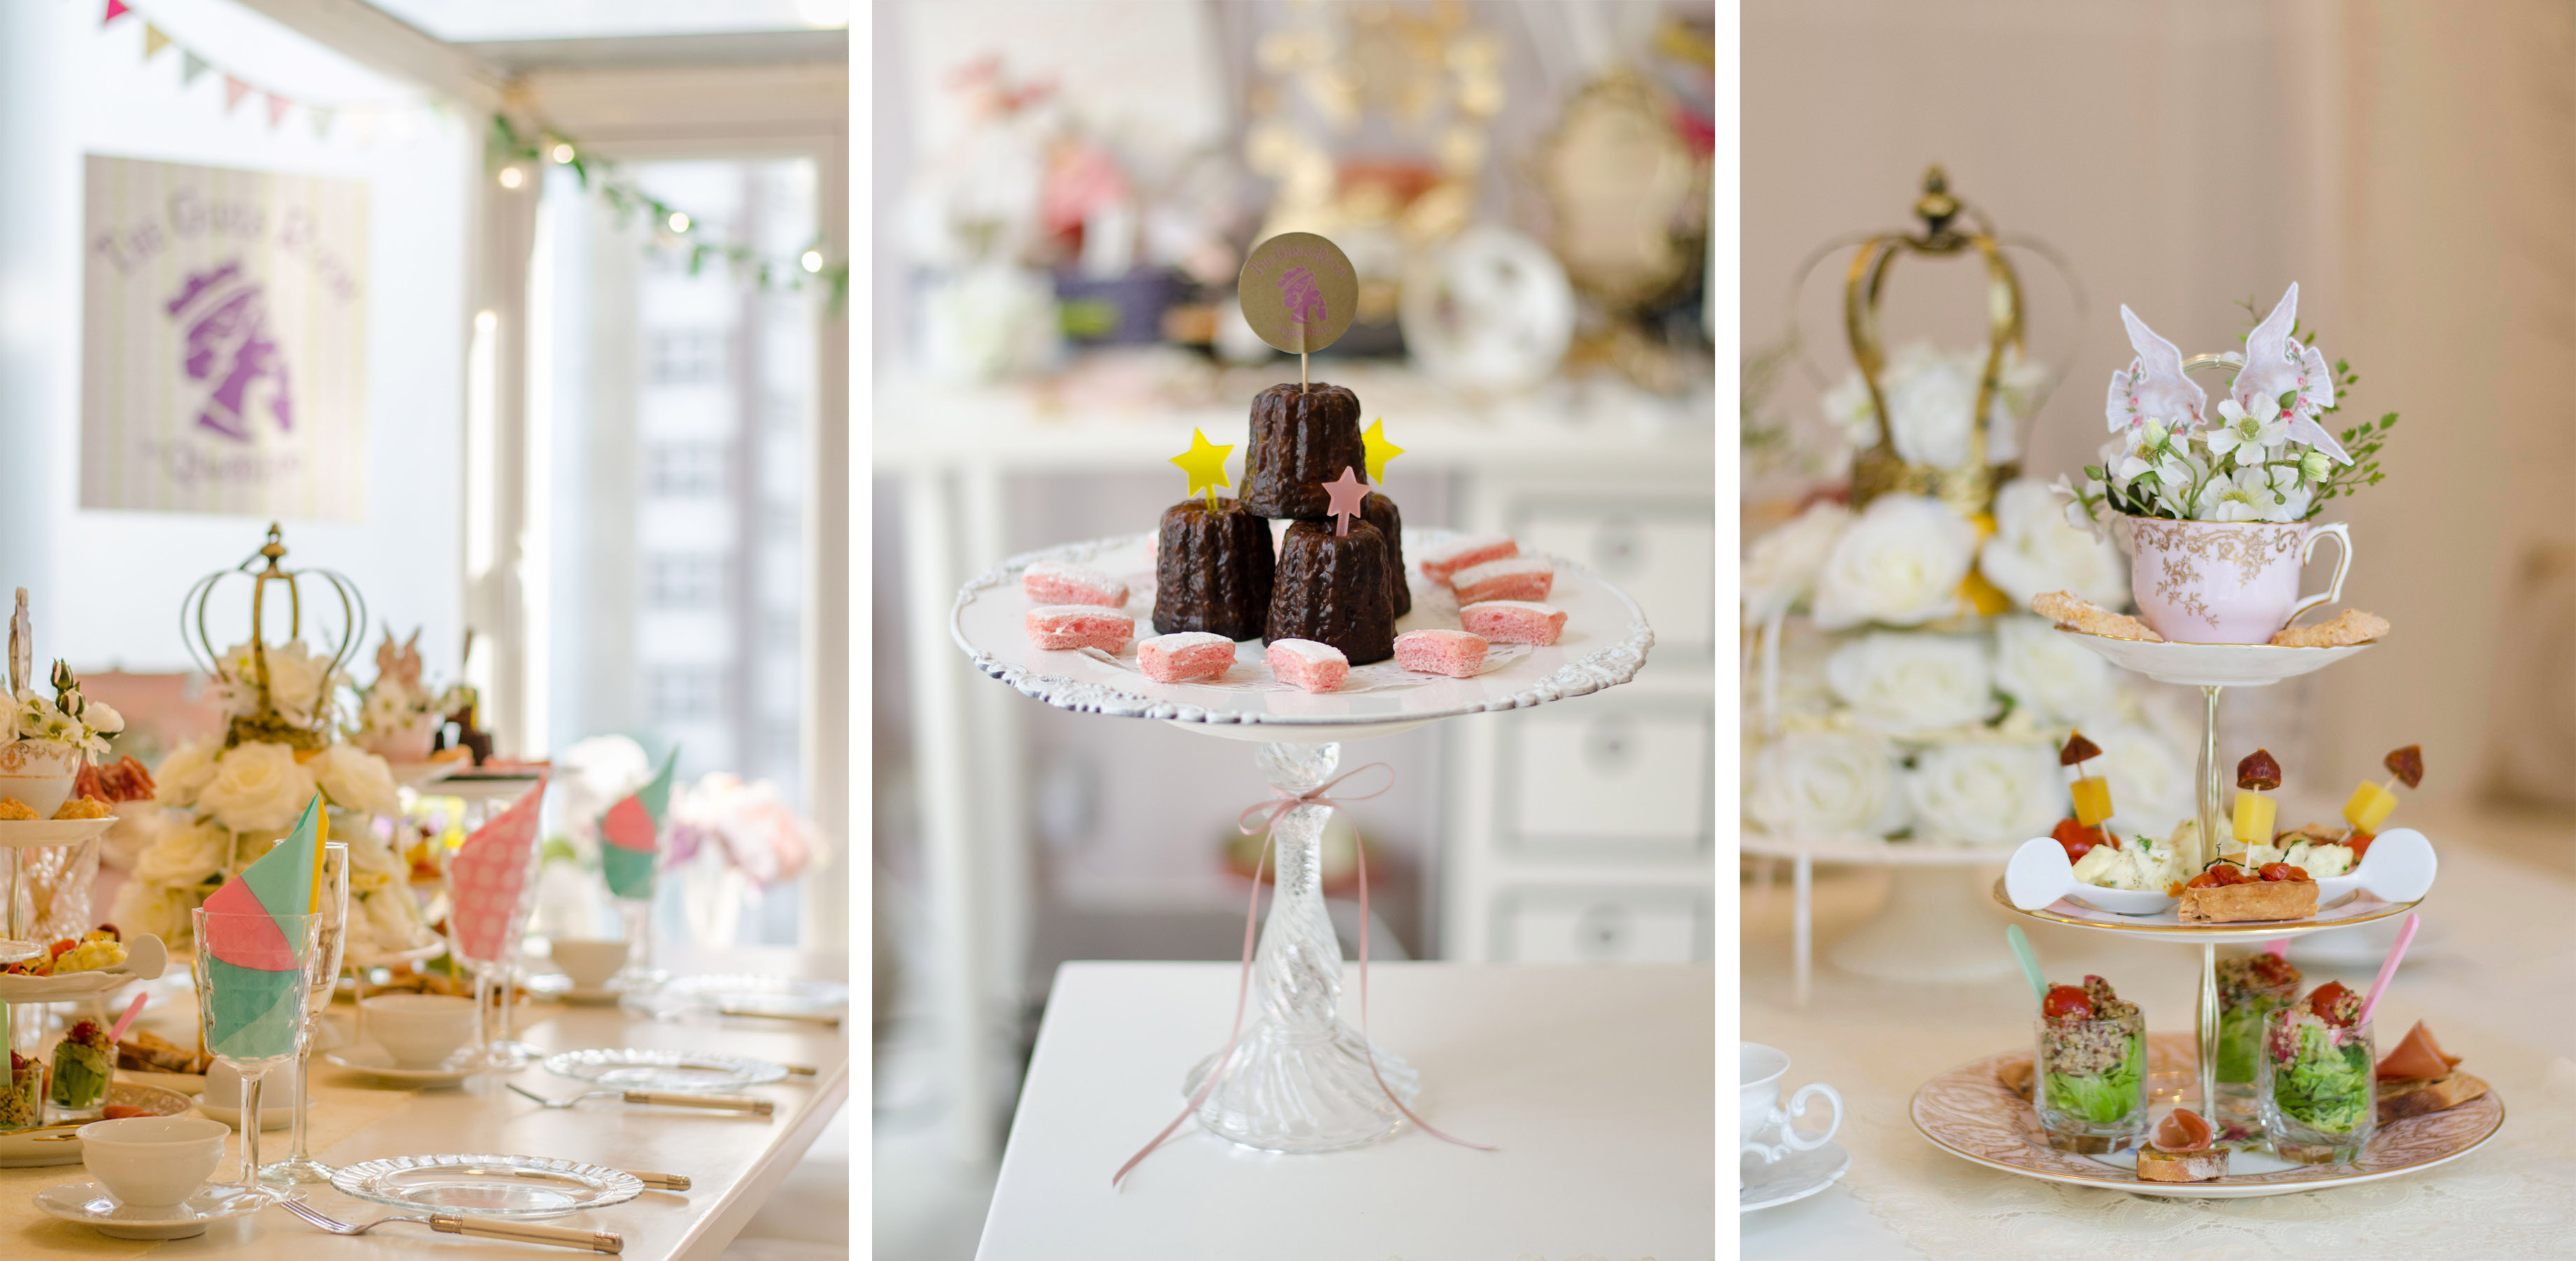 Royal Birthday Tea Party HK_The Girls Room by QueenEco